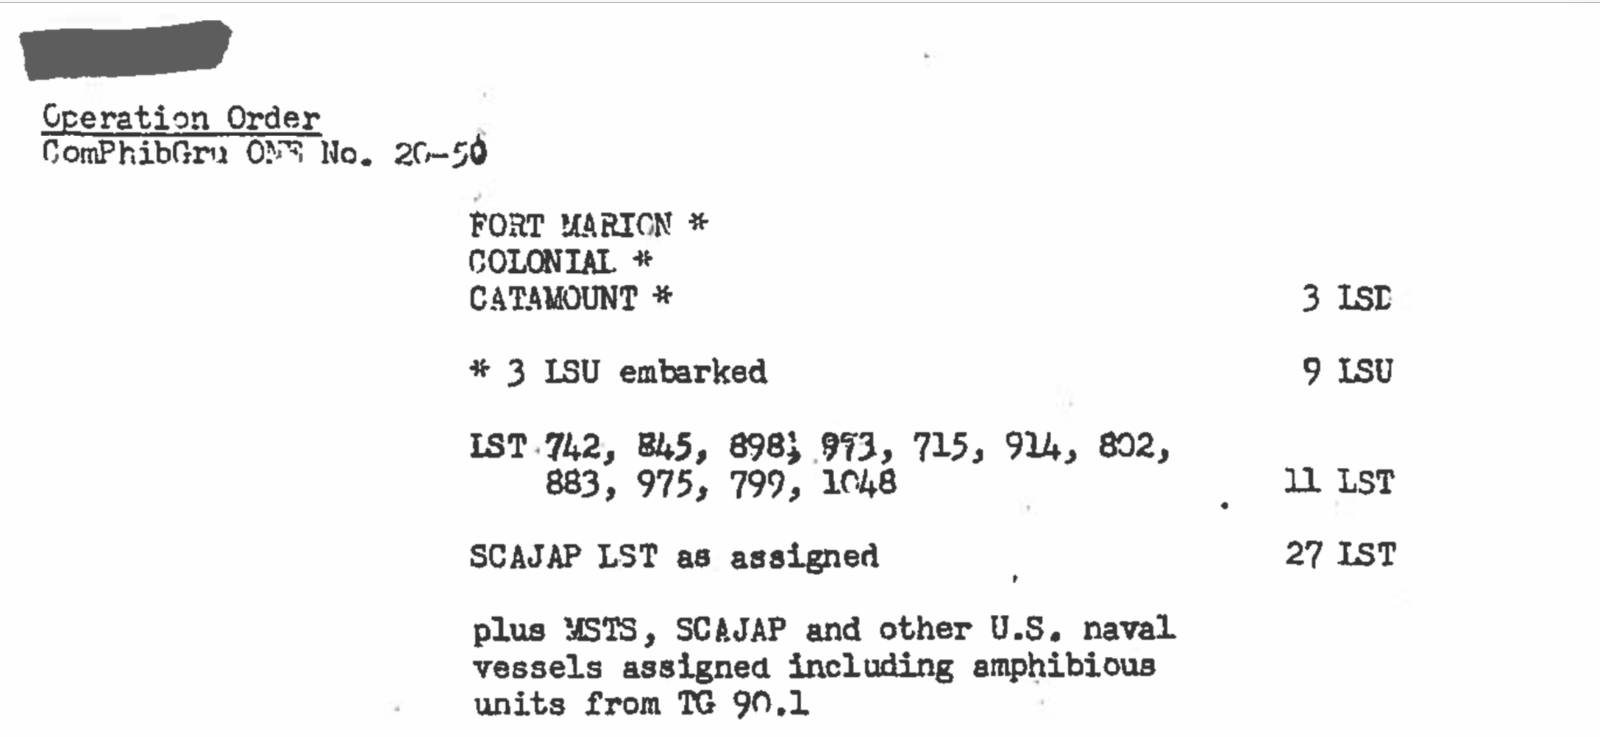 LST Section from Operations Order